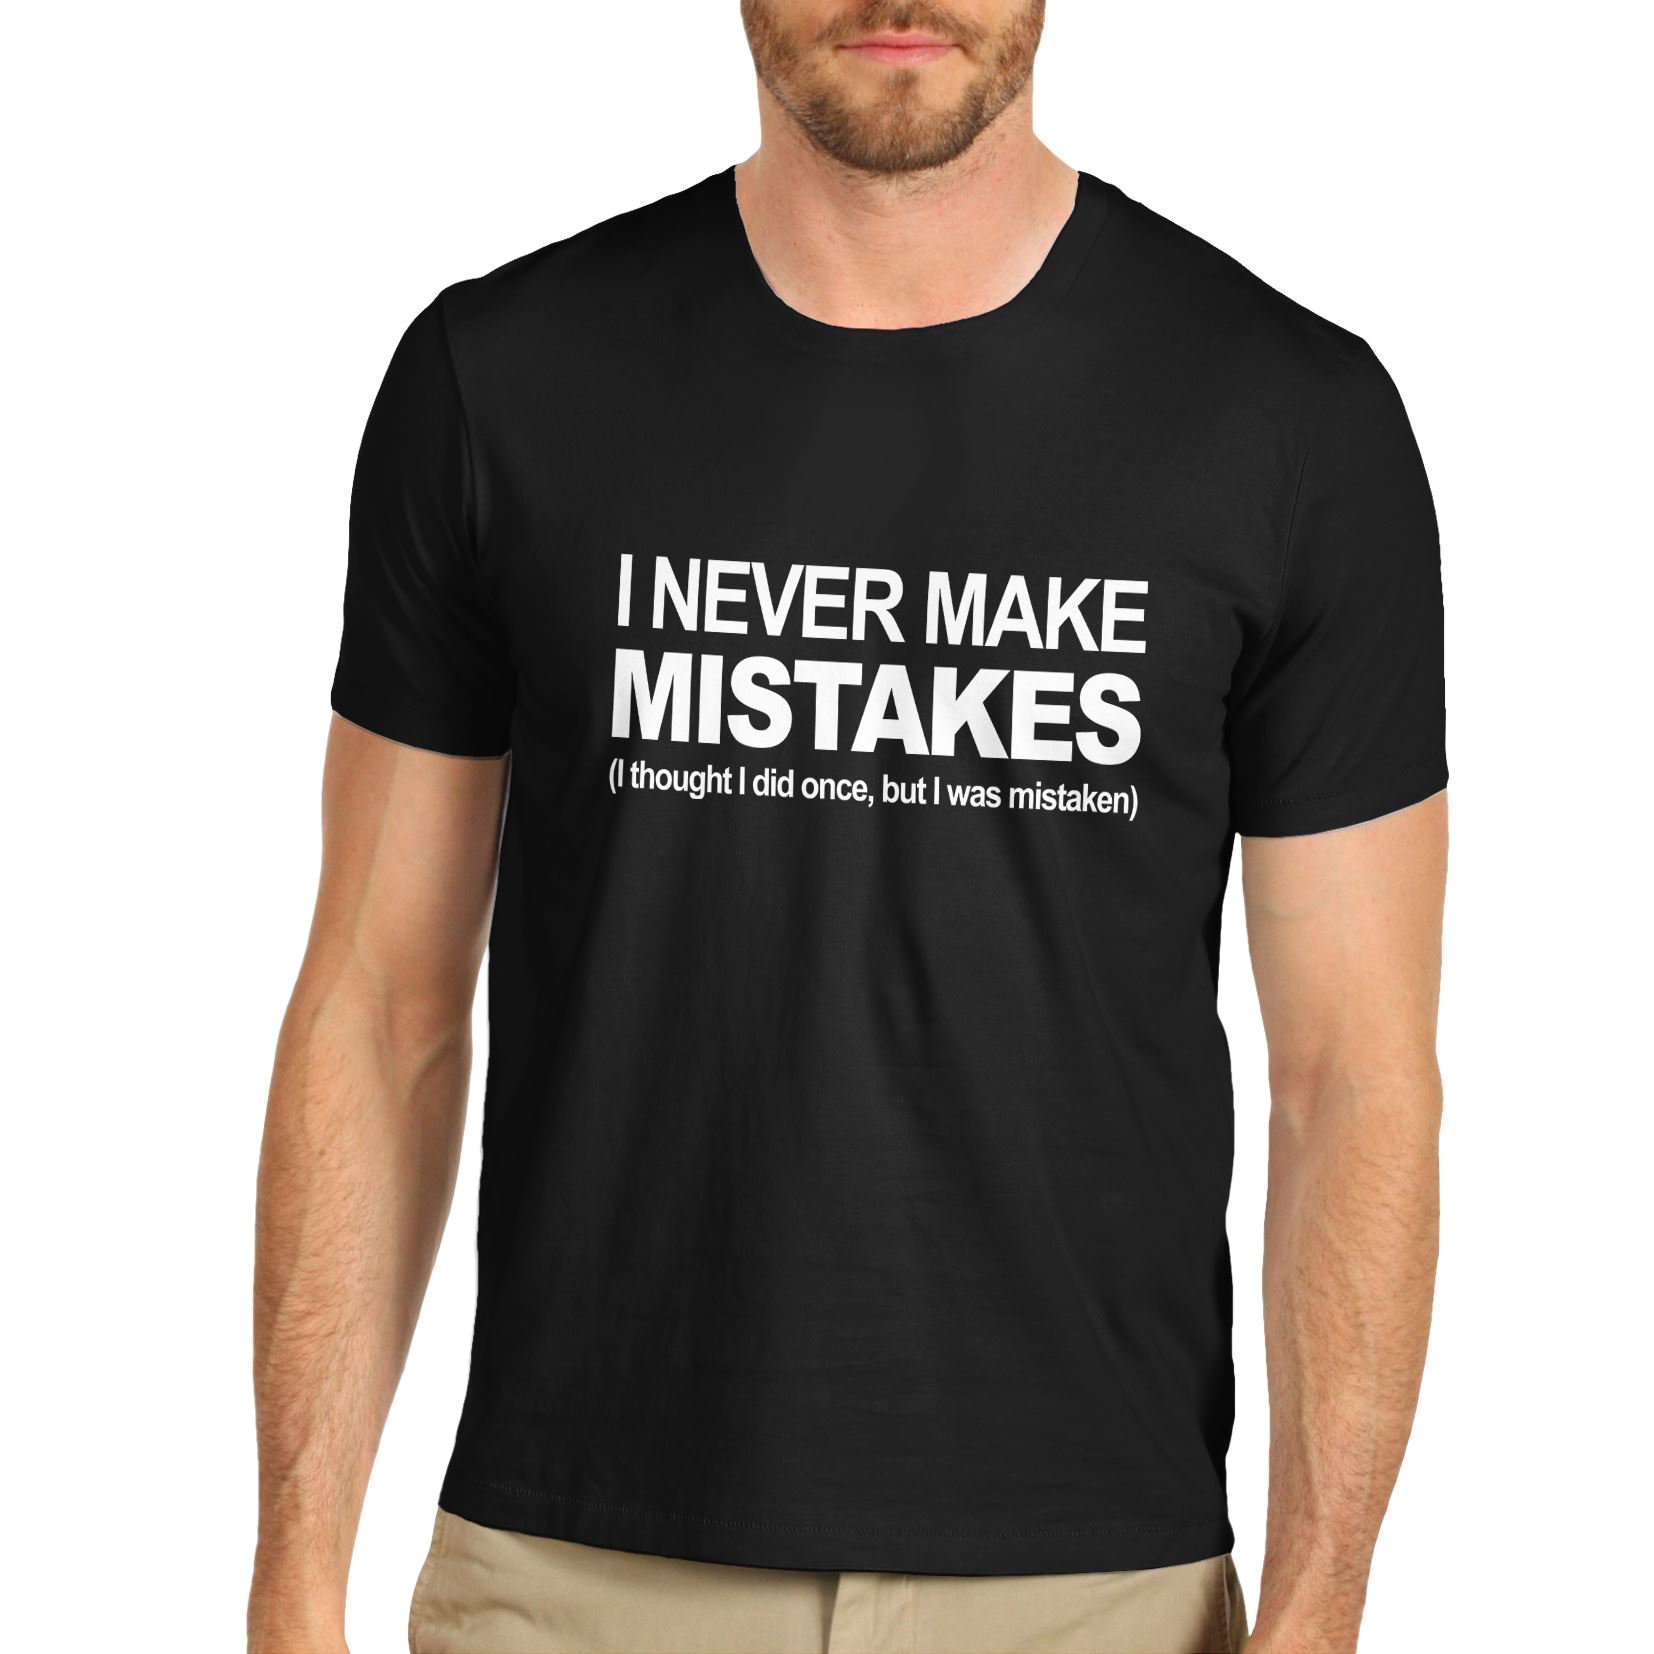 dc71449df8 Details about Twisted Envy Men's I Never Make Mistakes Funny Slogan T-Shirt